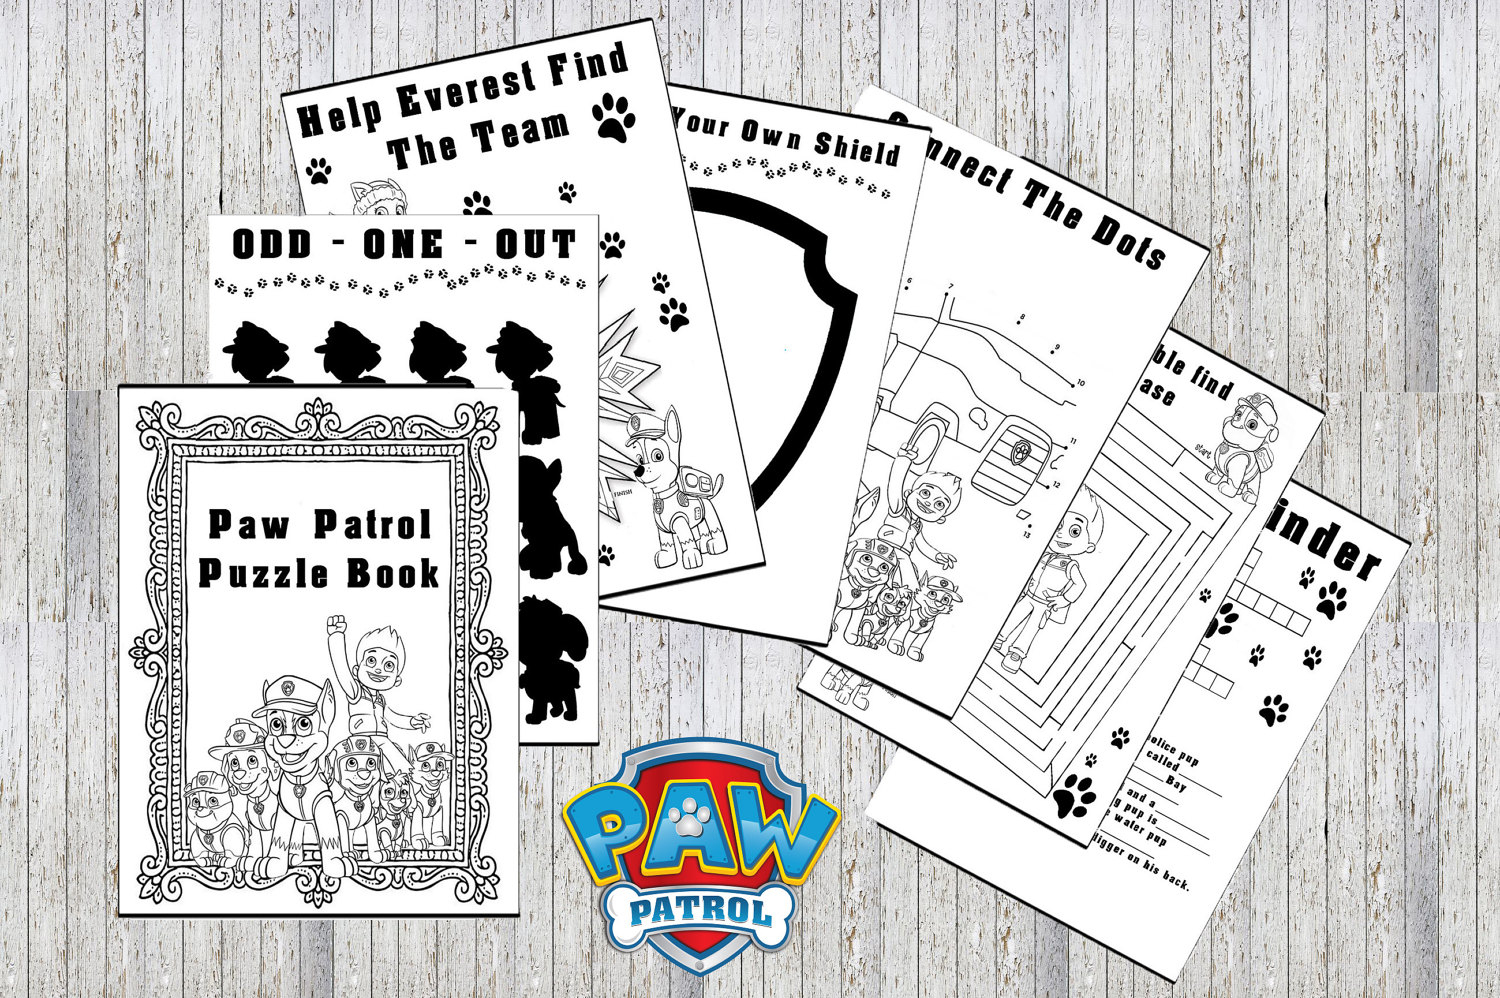 Paw Patrol Printable Puzzle Quiz Colouring Book Ideal | Etsy - Printable Puzzle Quiz